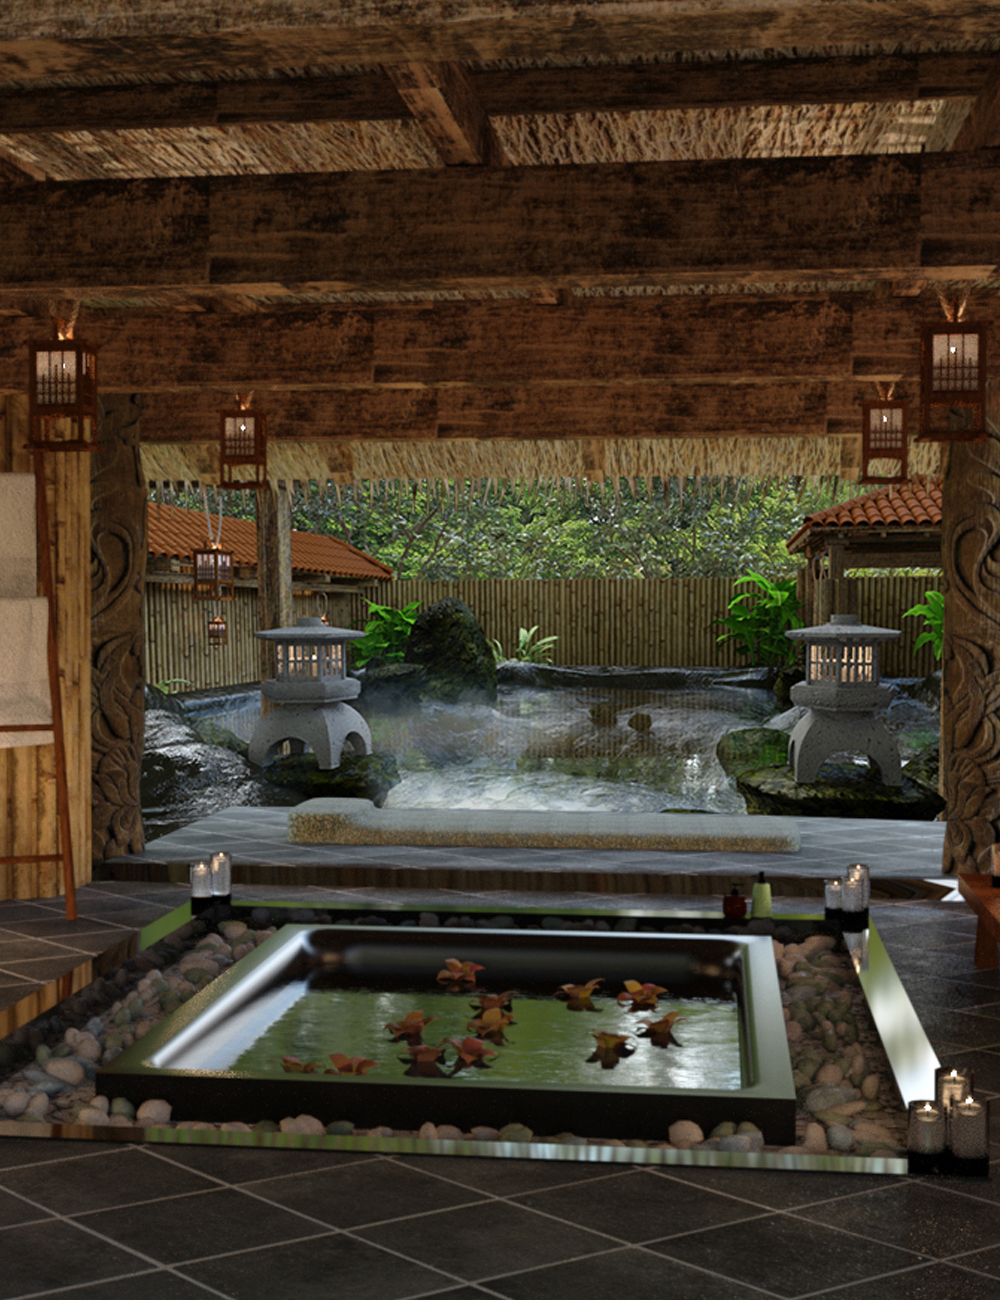 Japanese Spa and Hot Spring by: Digitallab3D, 3D Models by Daz 3D